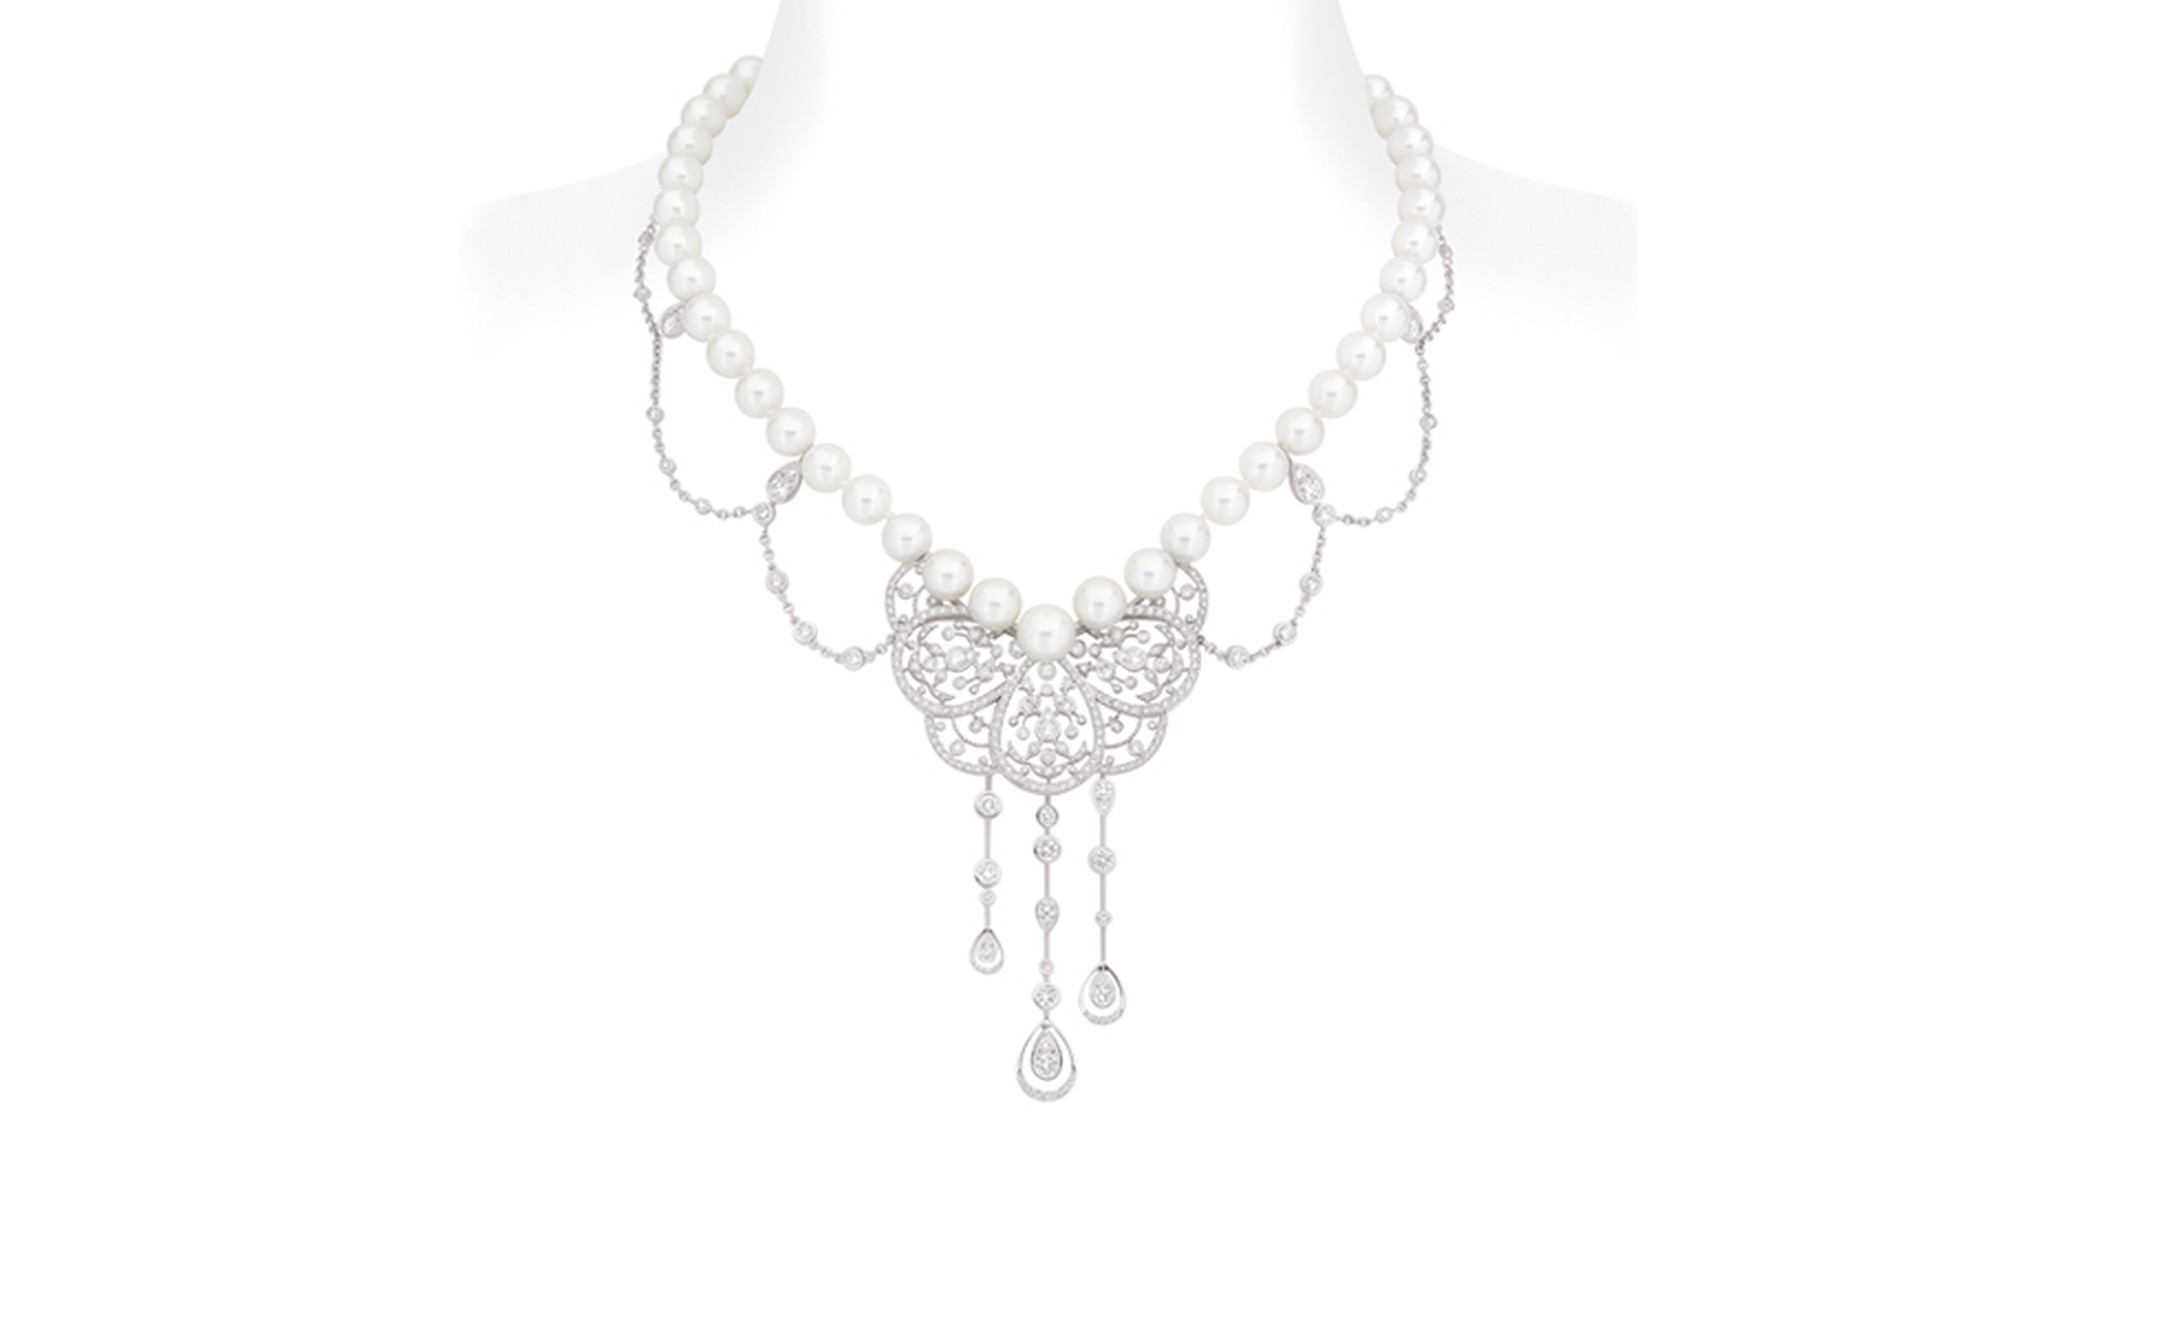 Chanel Secrets D'Orient Camelia Dentelle Necklace in 18 karat white gold, diamonds and cultured pearls. POA